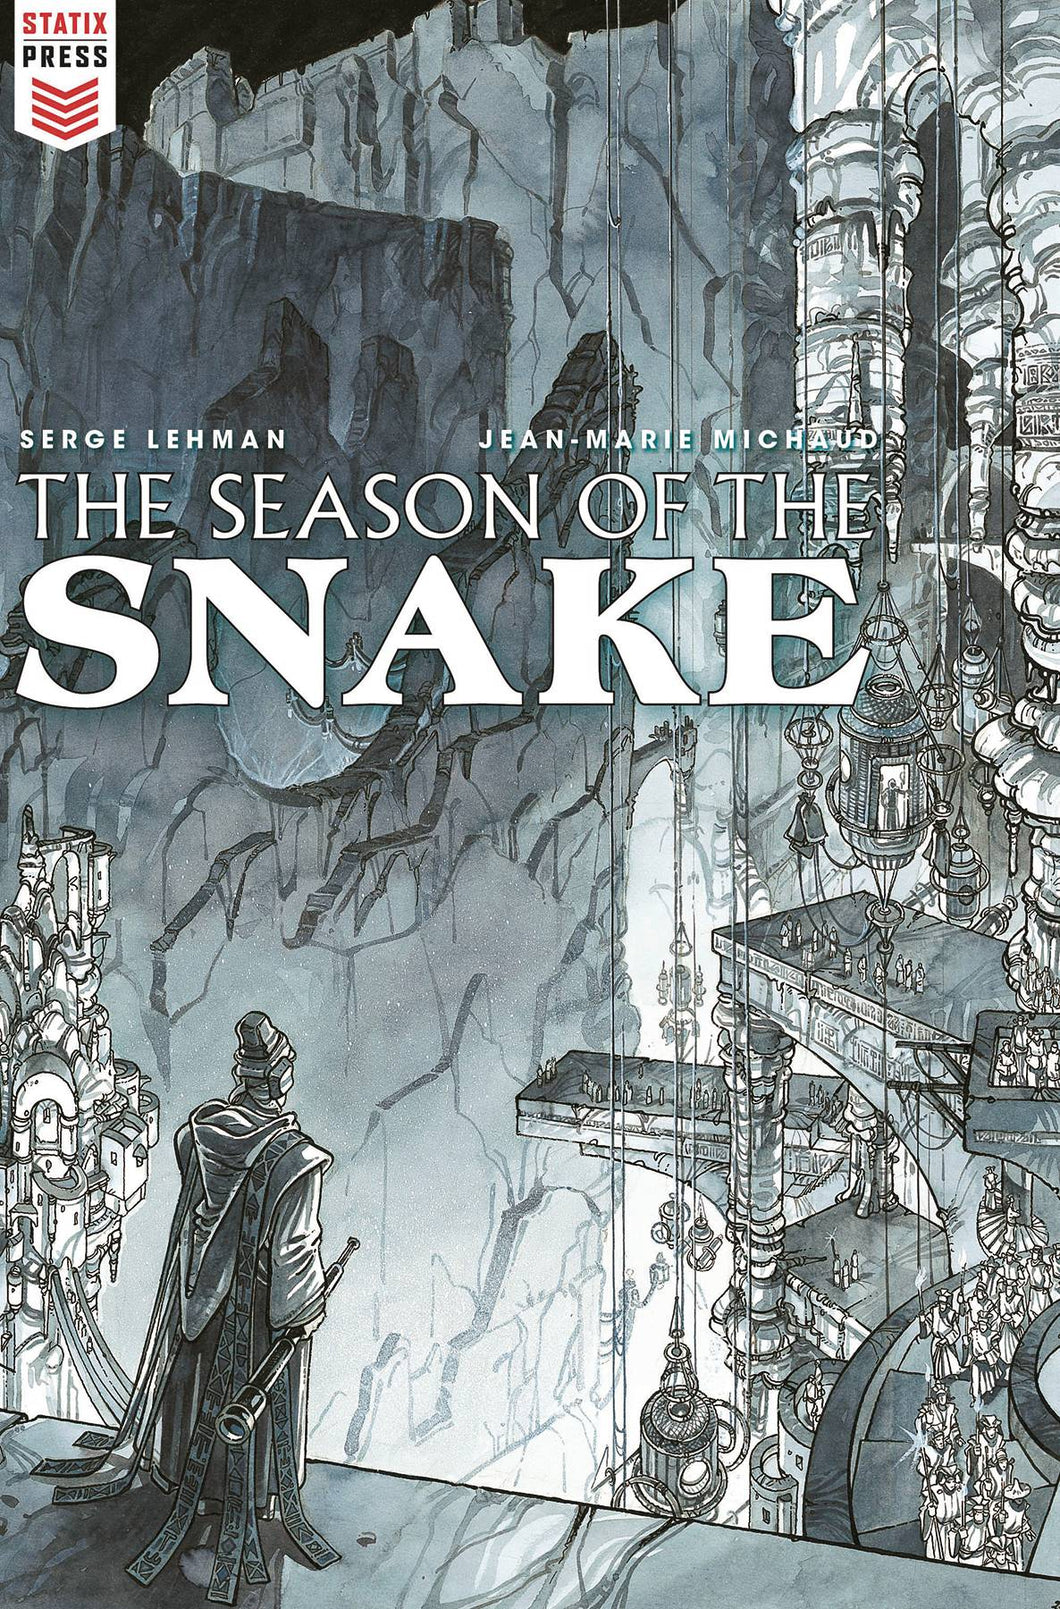 SEASON OF THE SNAKE #2